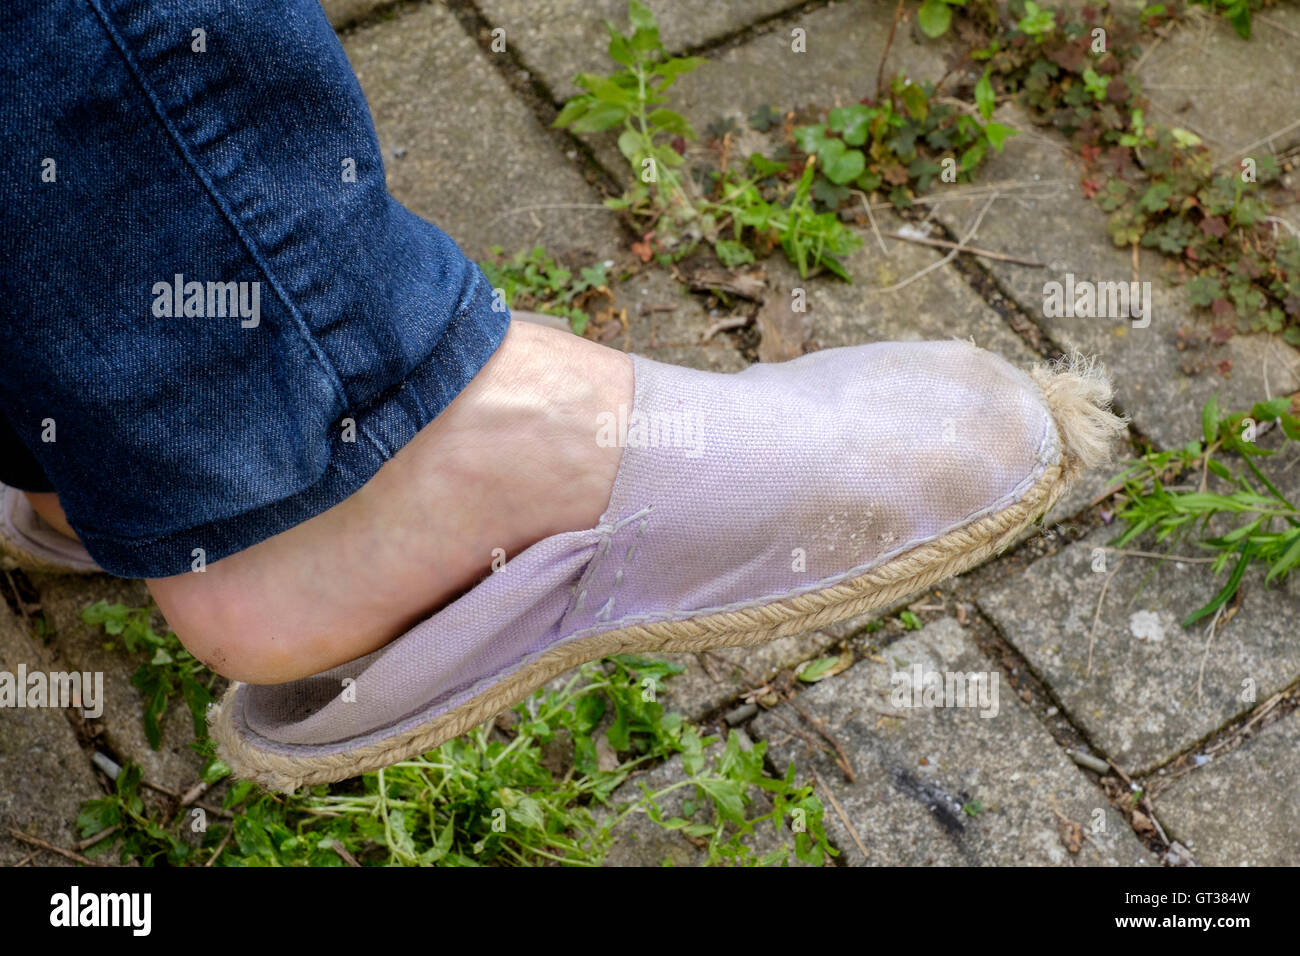 female wearing old worn out comfortable footwear - Stock Image